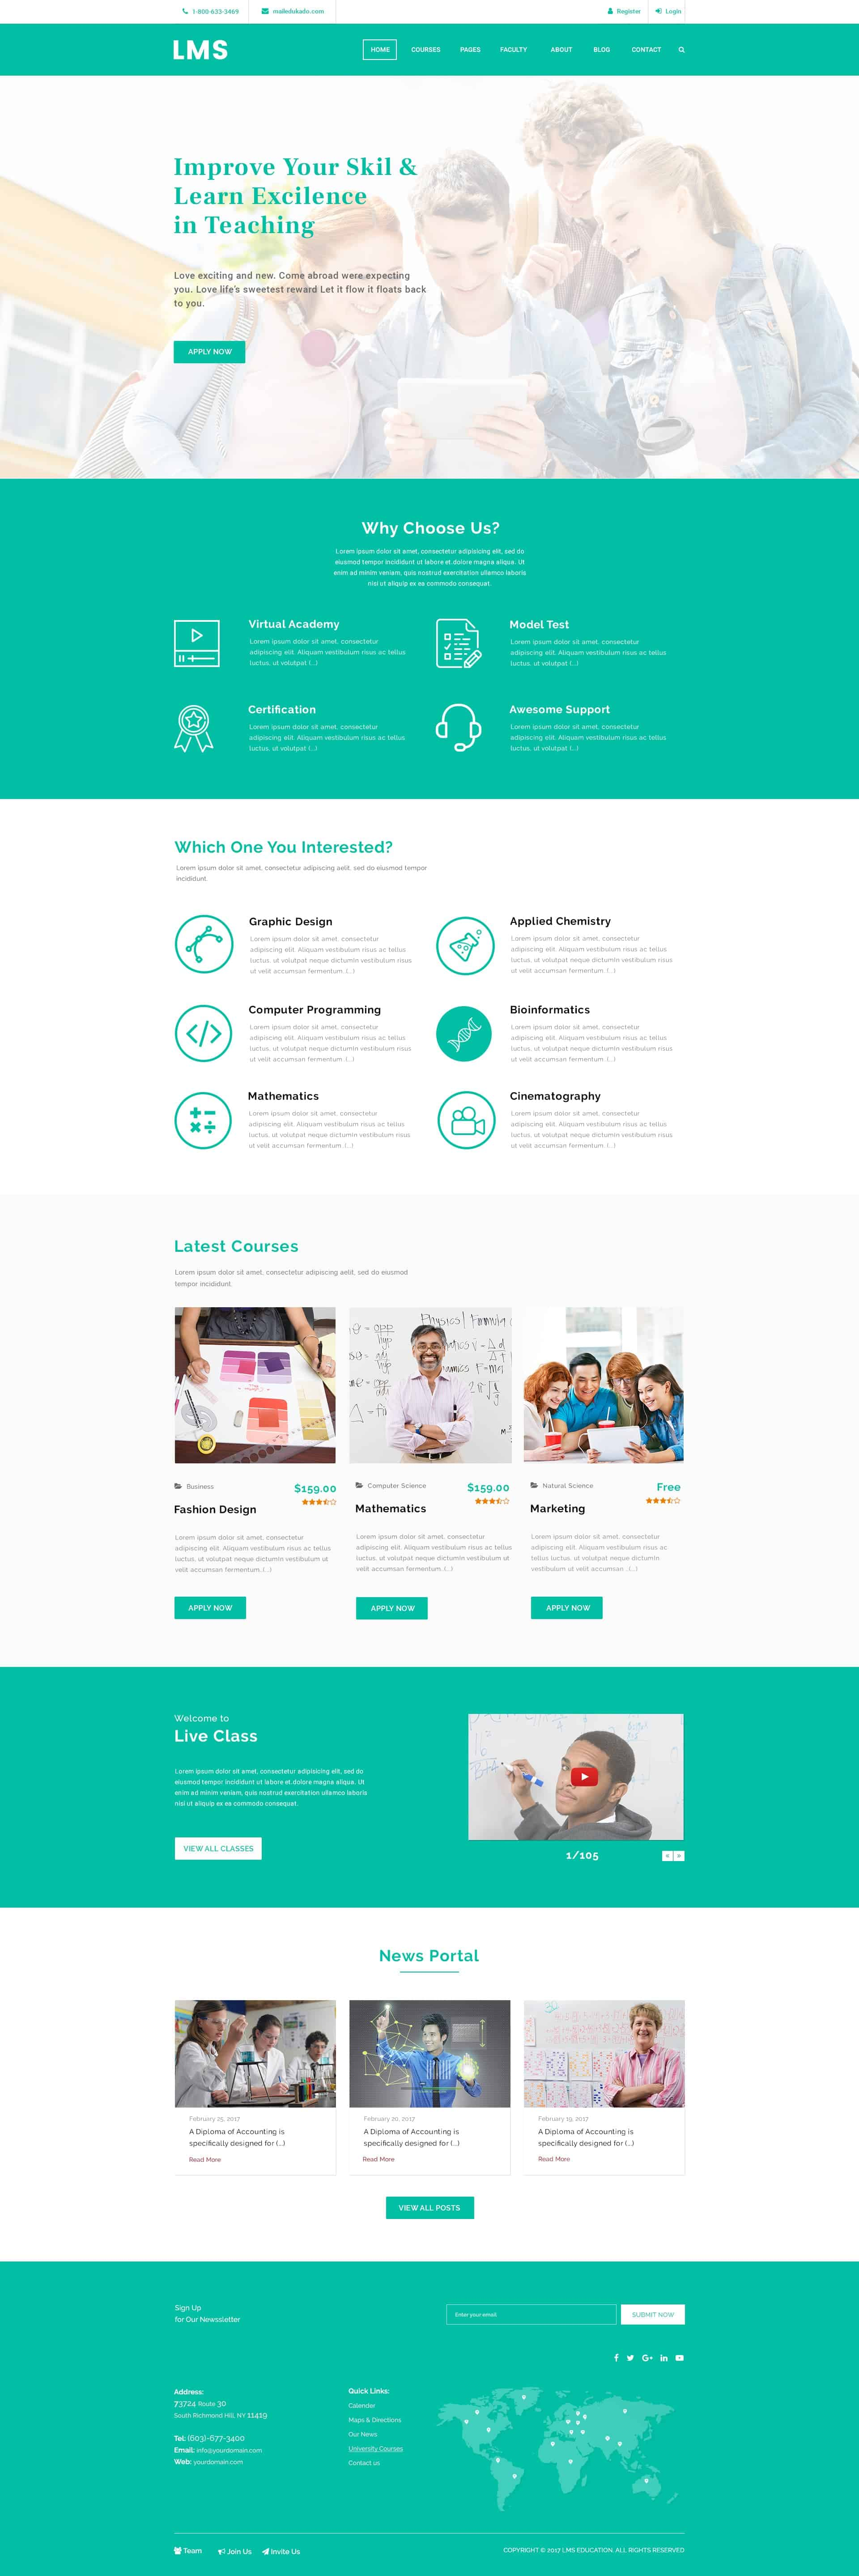 LMS - Learning Management System Free PSD 1